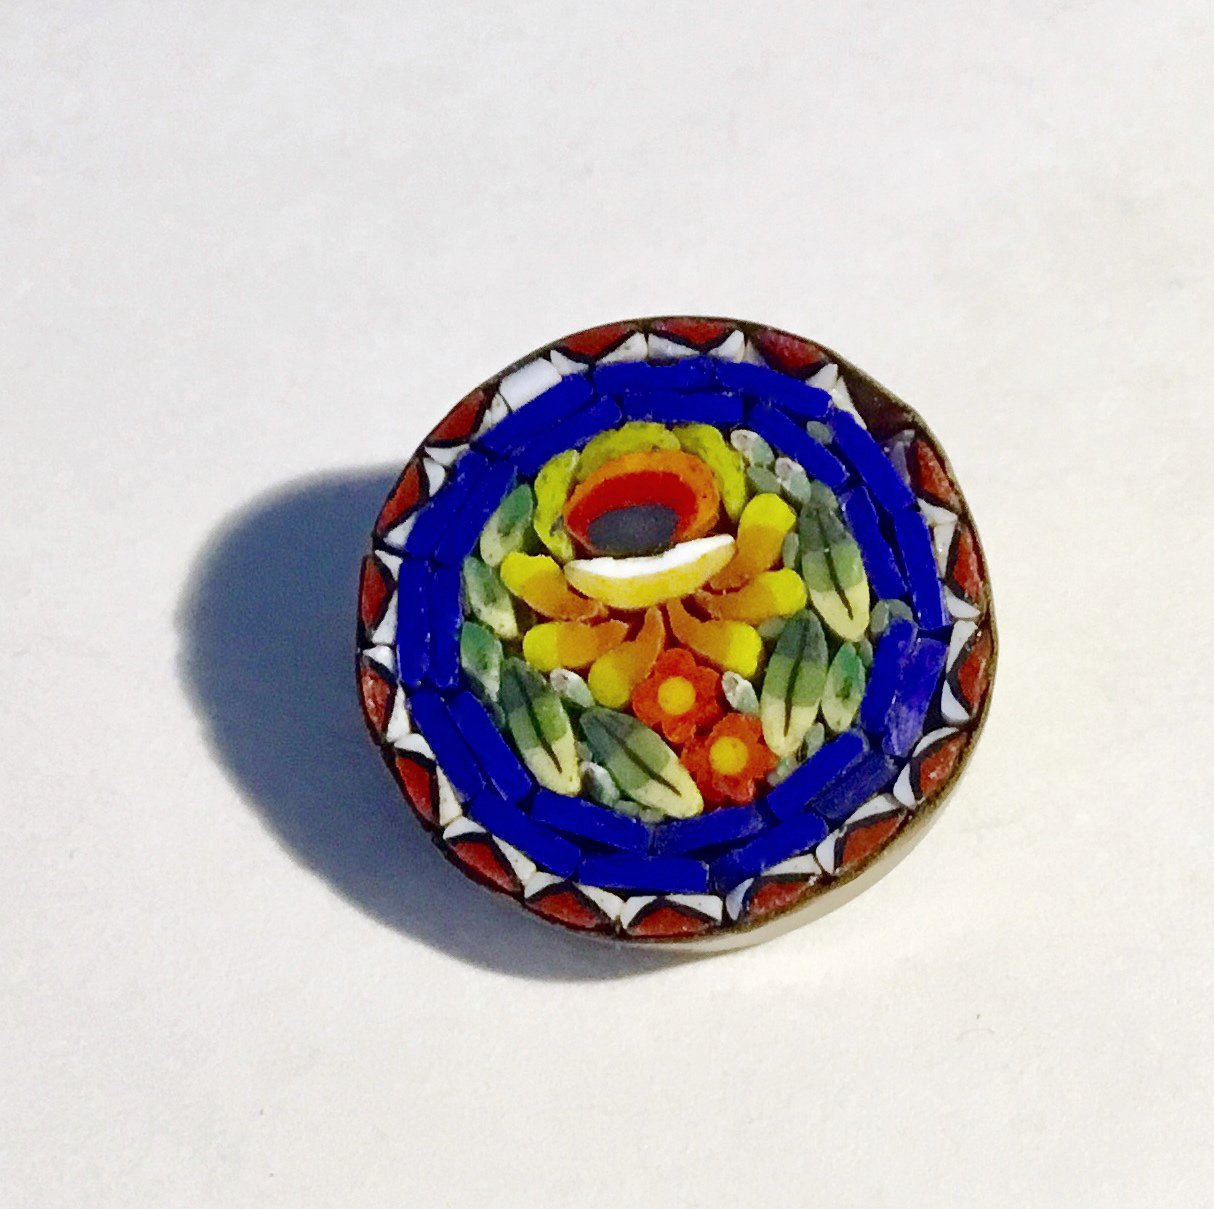 Early 20th Century Vintage Mosaic Brooch - Free USA Shipping